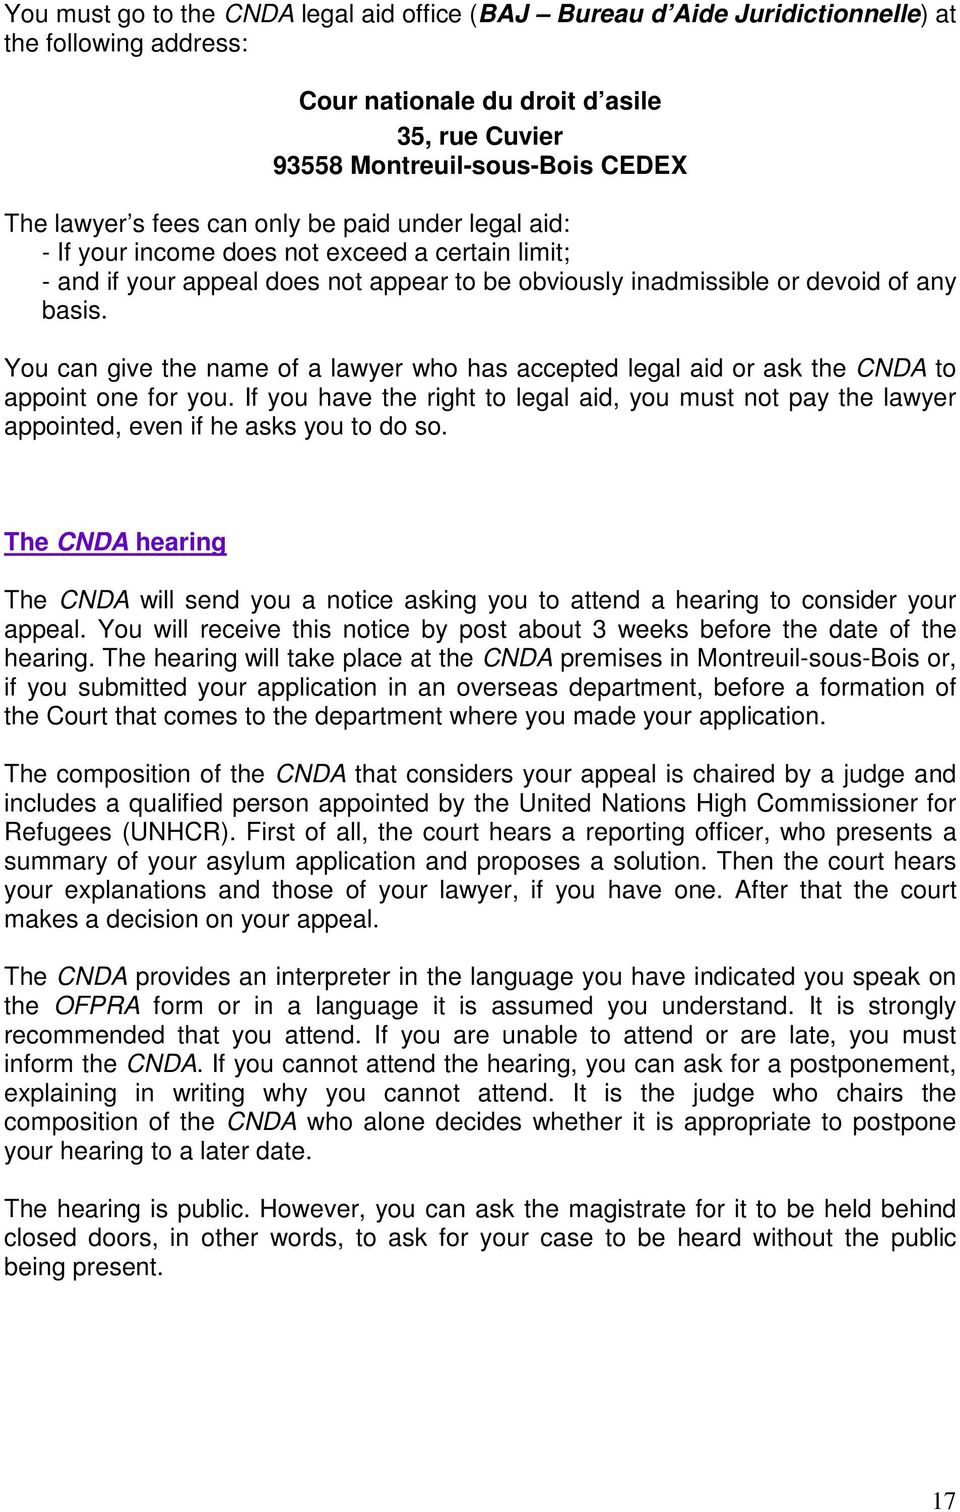 You can give the name of a lawyer who has accepted legal aid or ask the CNDA to appoint one for you.